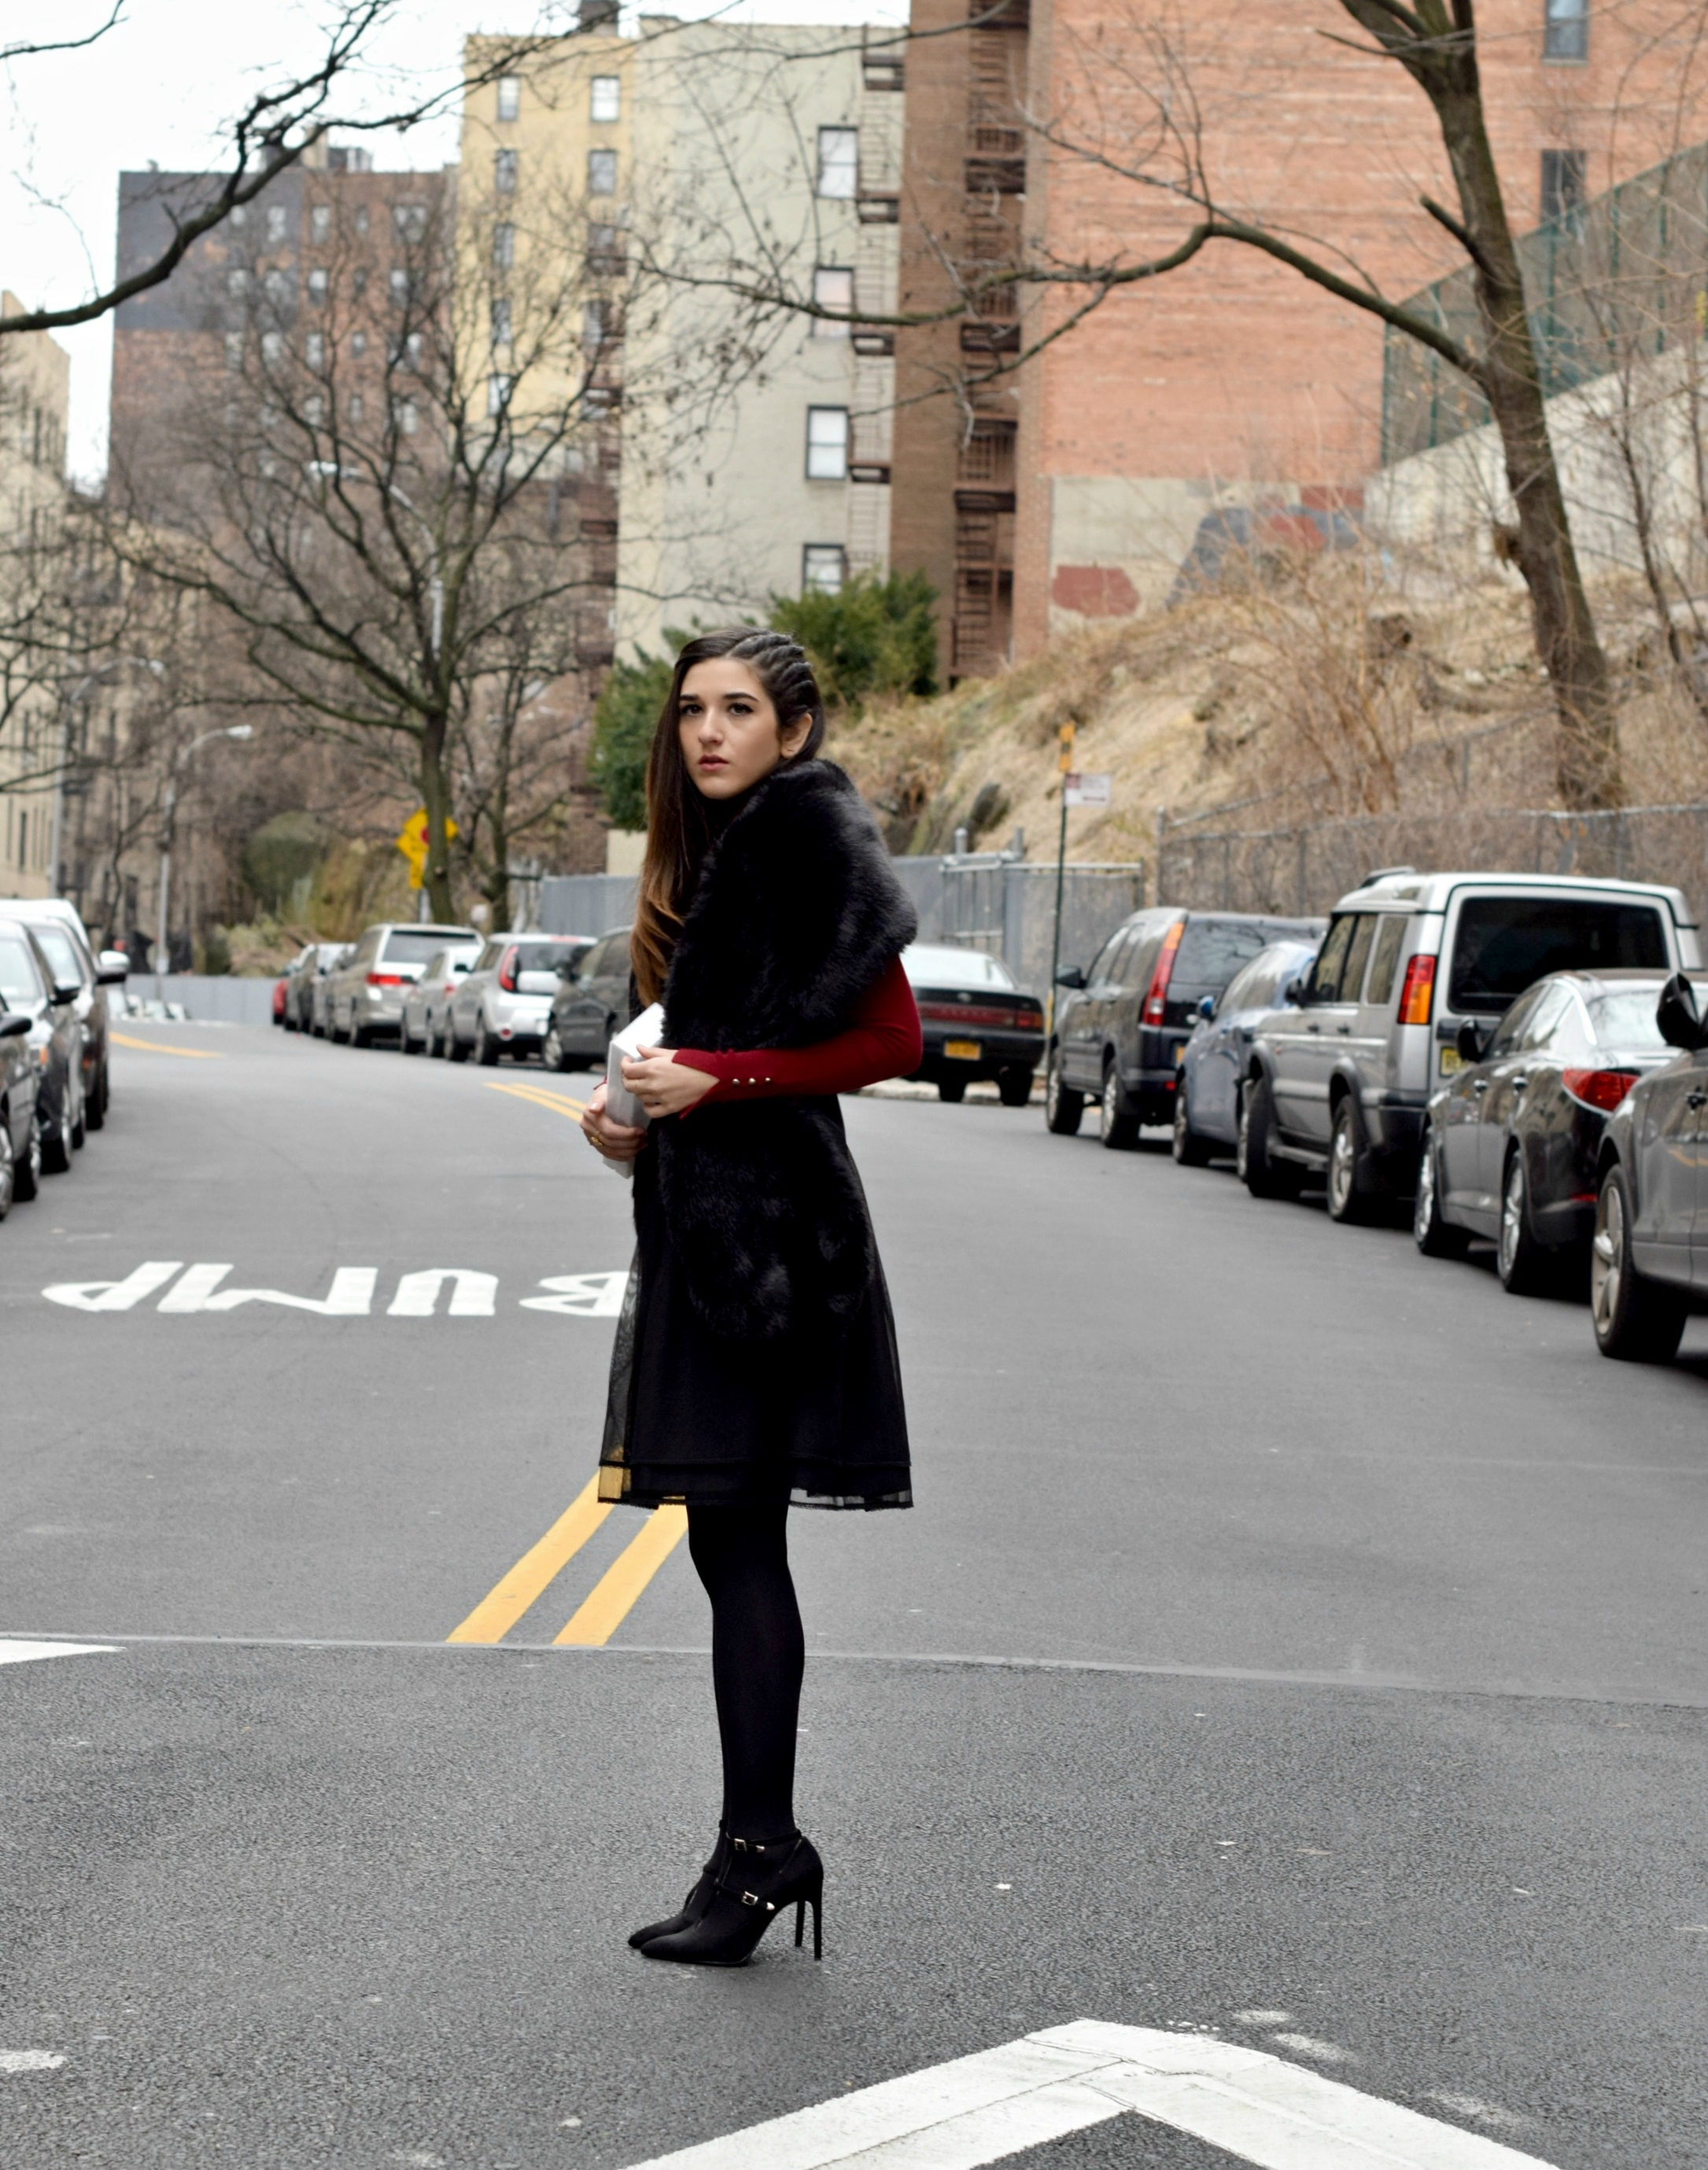 Red Turtleneck Under Strapless Dress Louboutins & Love Fashion Blog Esther Santer NYC Street Style Blogger Black Tights Name Monogrammed Clutch Hair Beautiful Inspo Model Photoshoot Shoes Heels Zara Outfit OOTD Shopping Women Girl Winter New York City.jpg